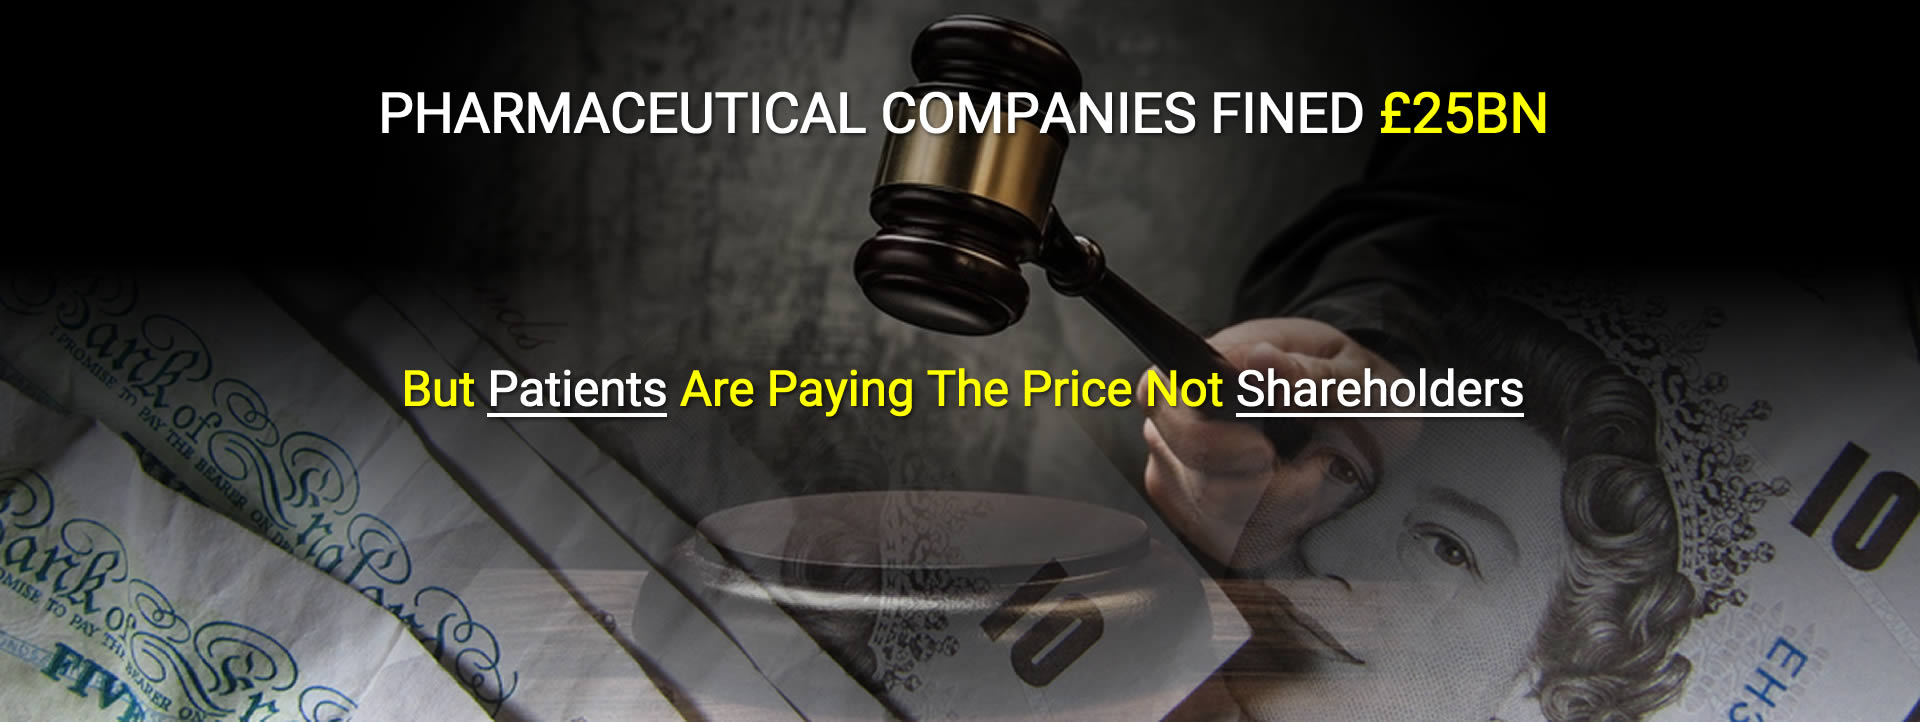 Drug Firms Guilty - Profits Before Patients